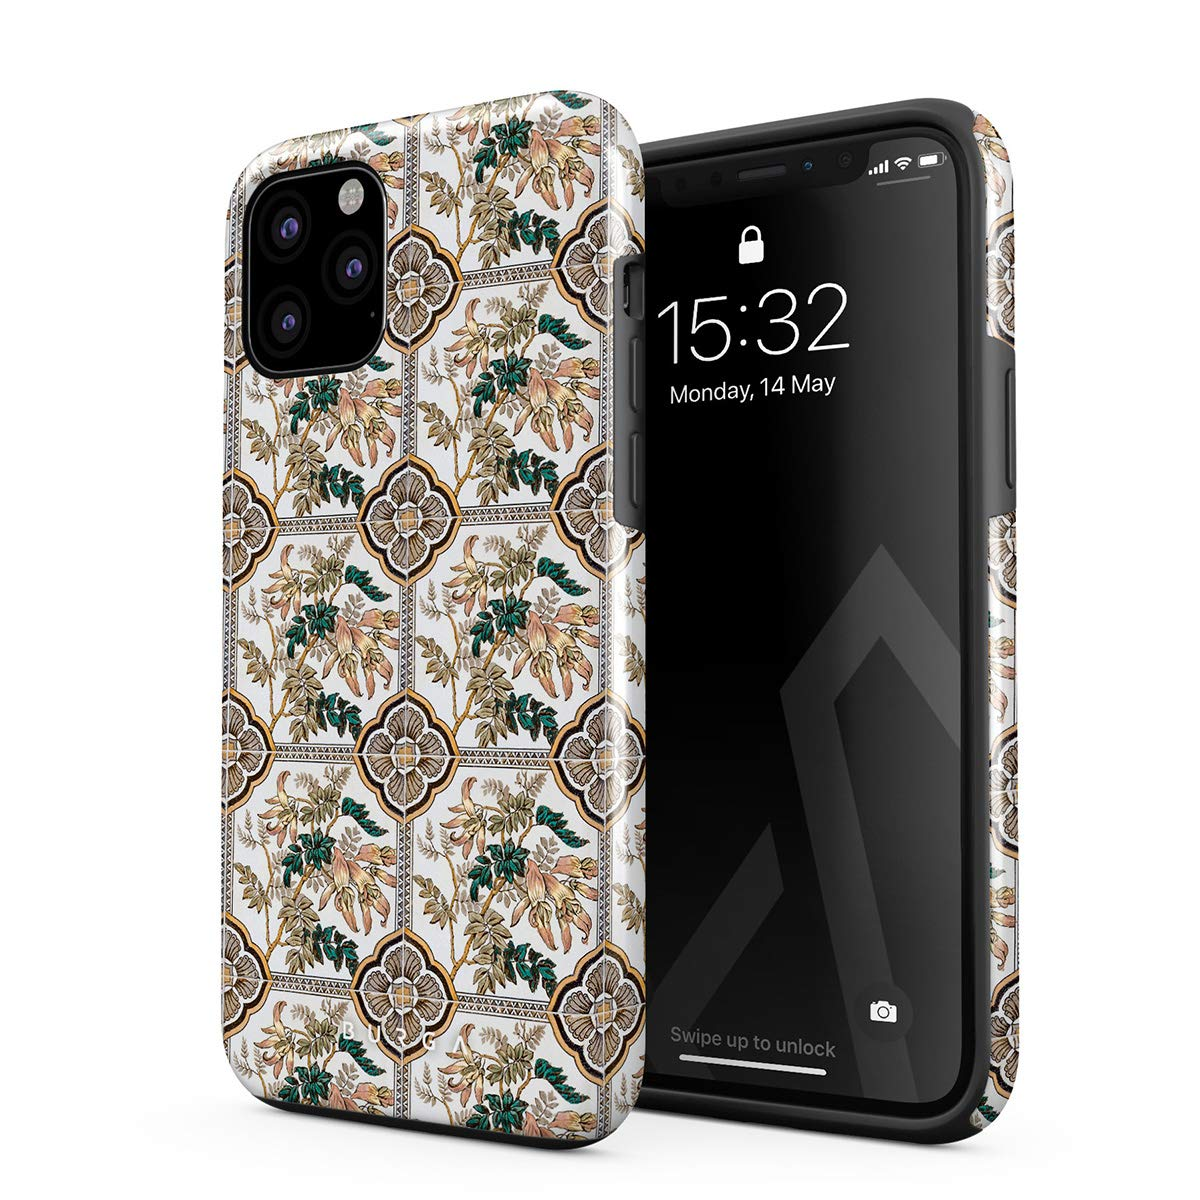 BURGA Phone Case Compatible with iPhone 11 PRO - Vintage Flower Pattern for Girls Woman Boho Bohemian Summer Mosaic Pattern Heavy Duty Shockproof Dual Layer Hard Shell + Silicone Protective Cover